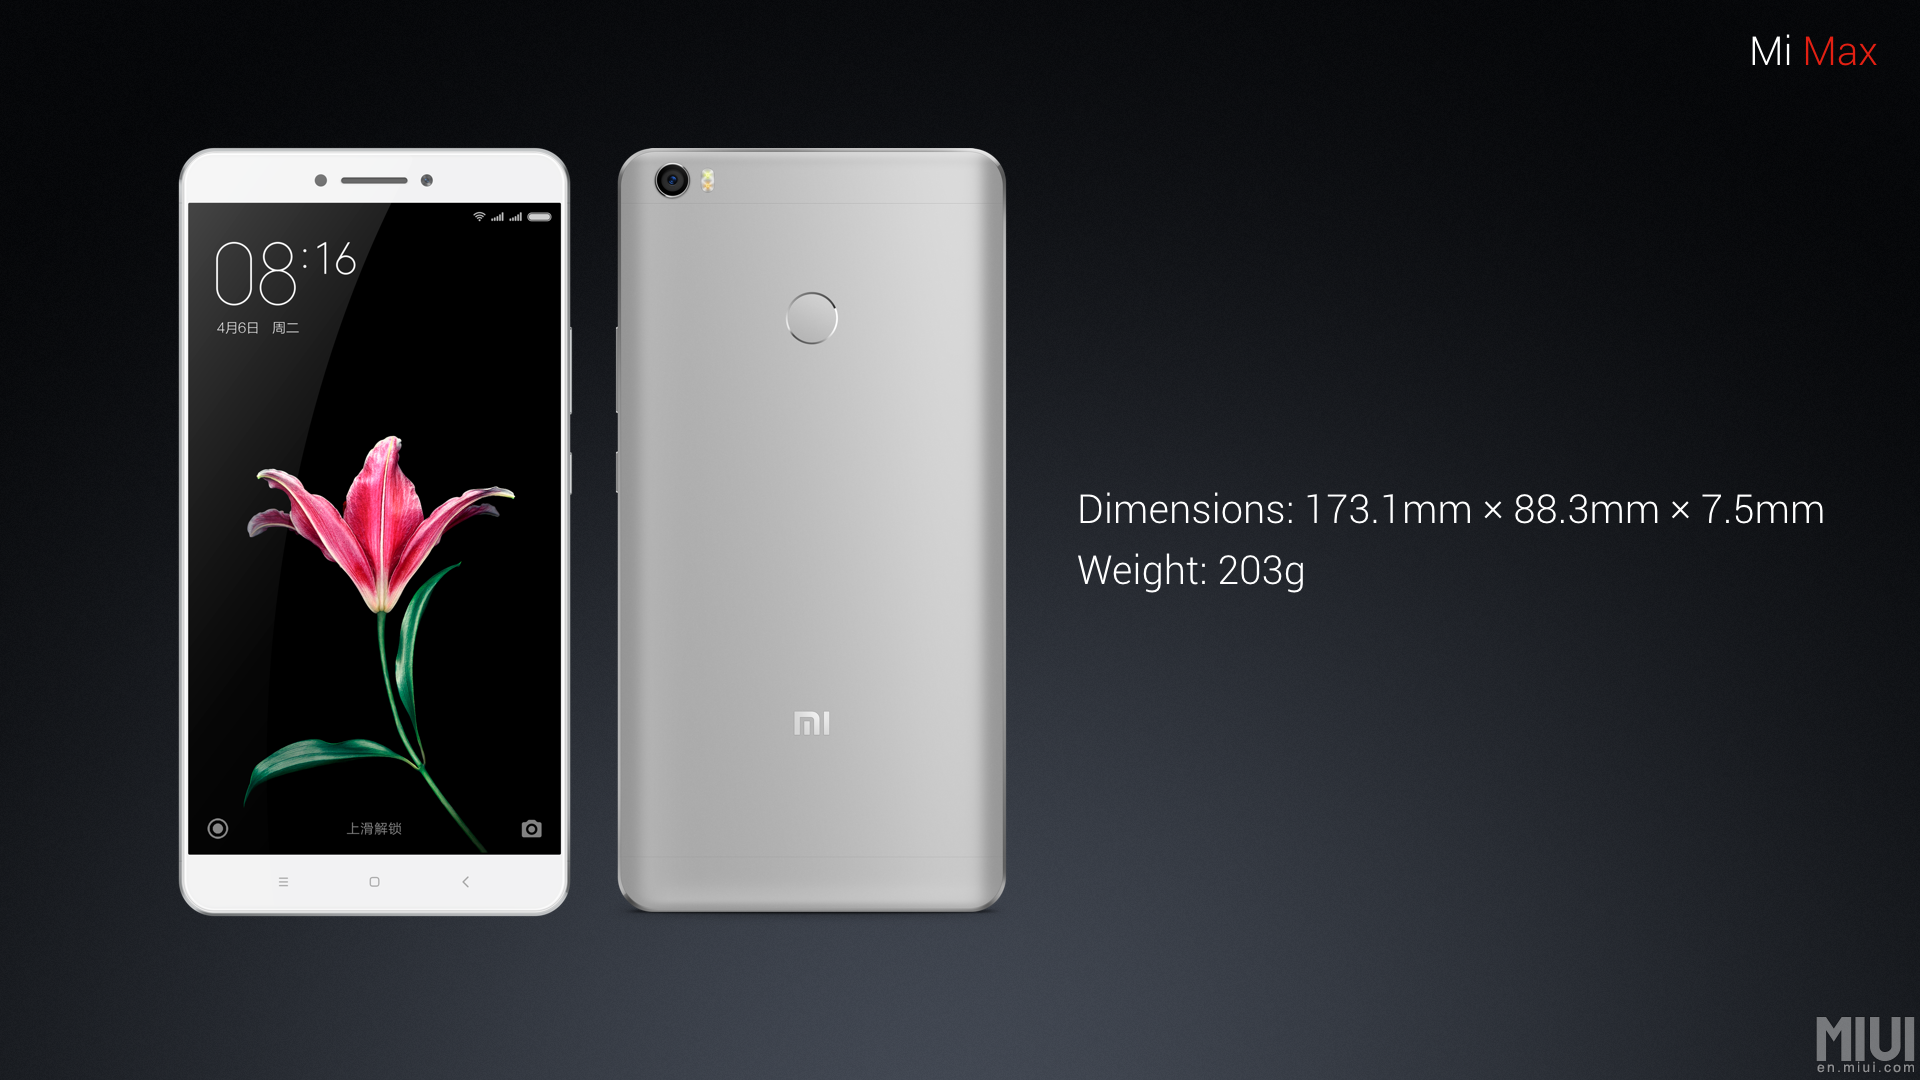 Xiaomi Launches The Mi Max 230 310 6 4 Inch 4850 Mah 7 5mm